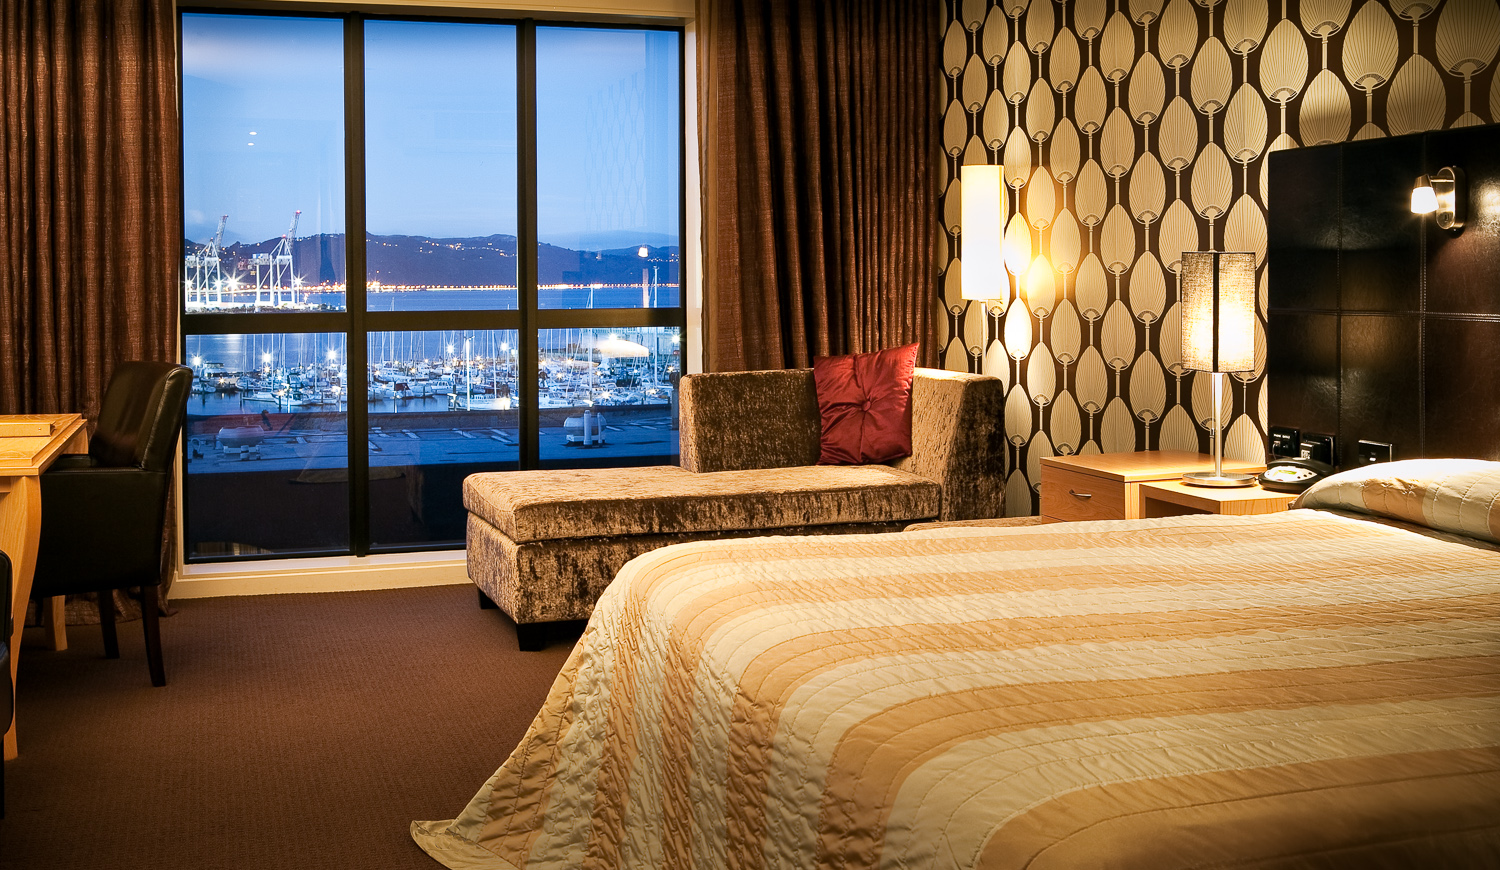 Hotel-dusk-room-Wellington-photographer-Paul-Fisher.jpg